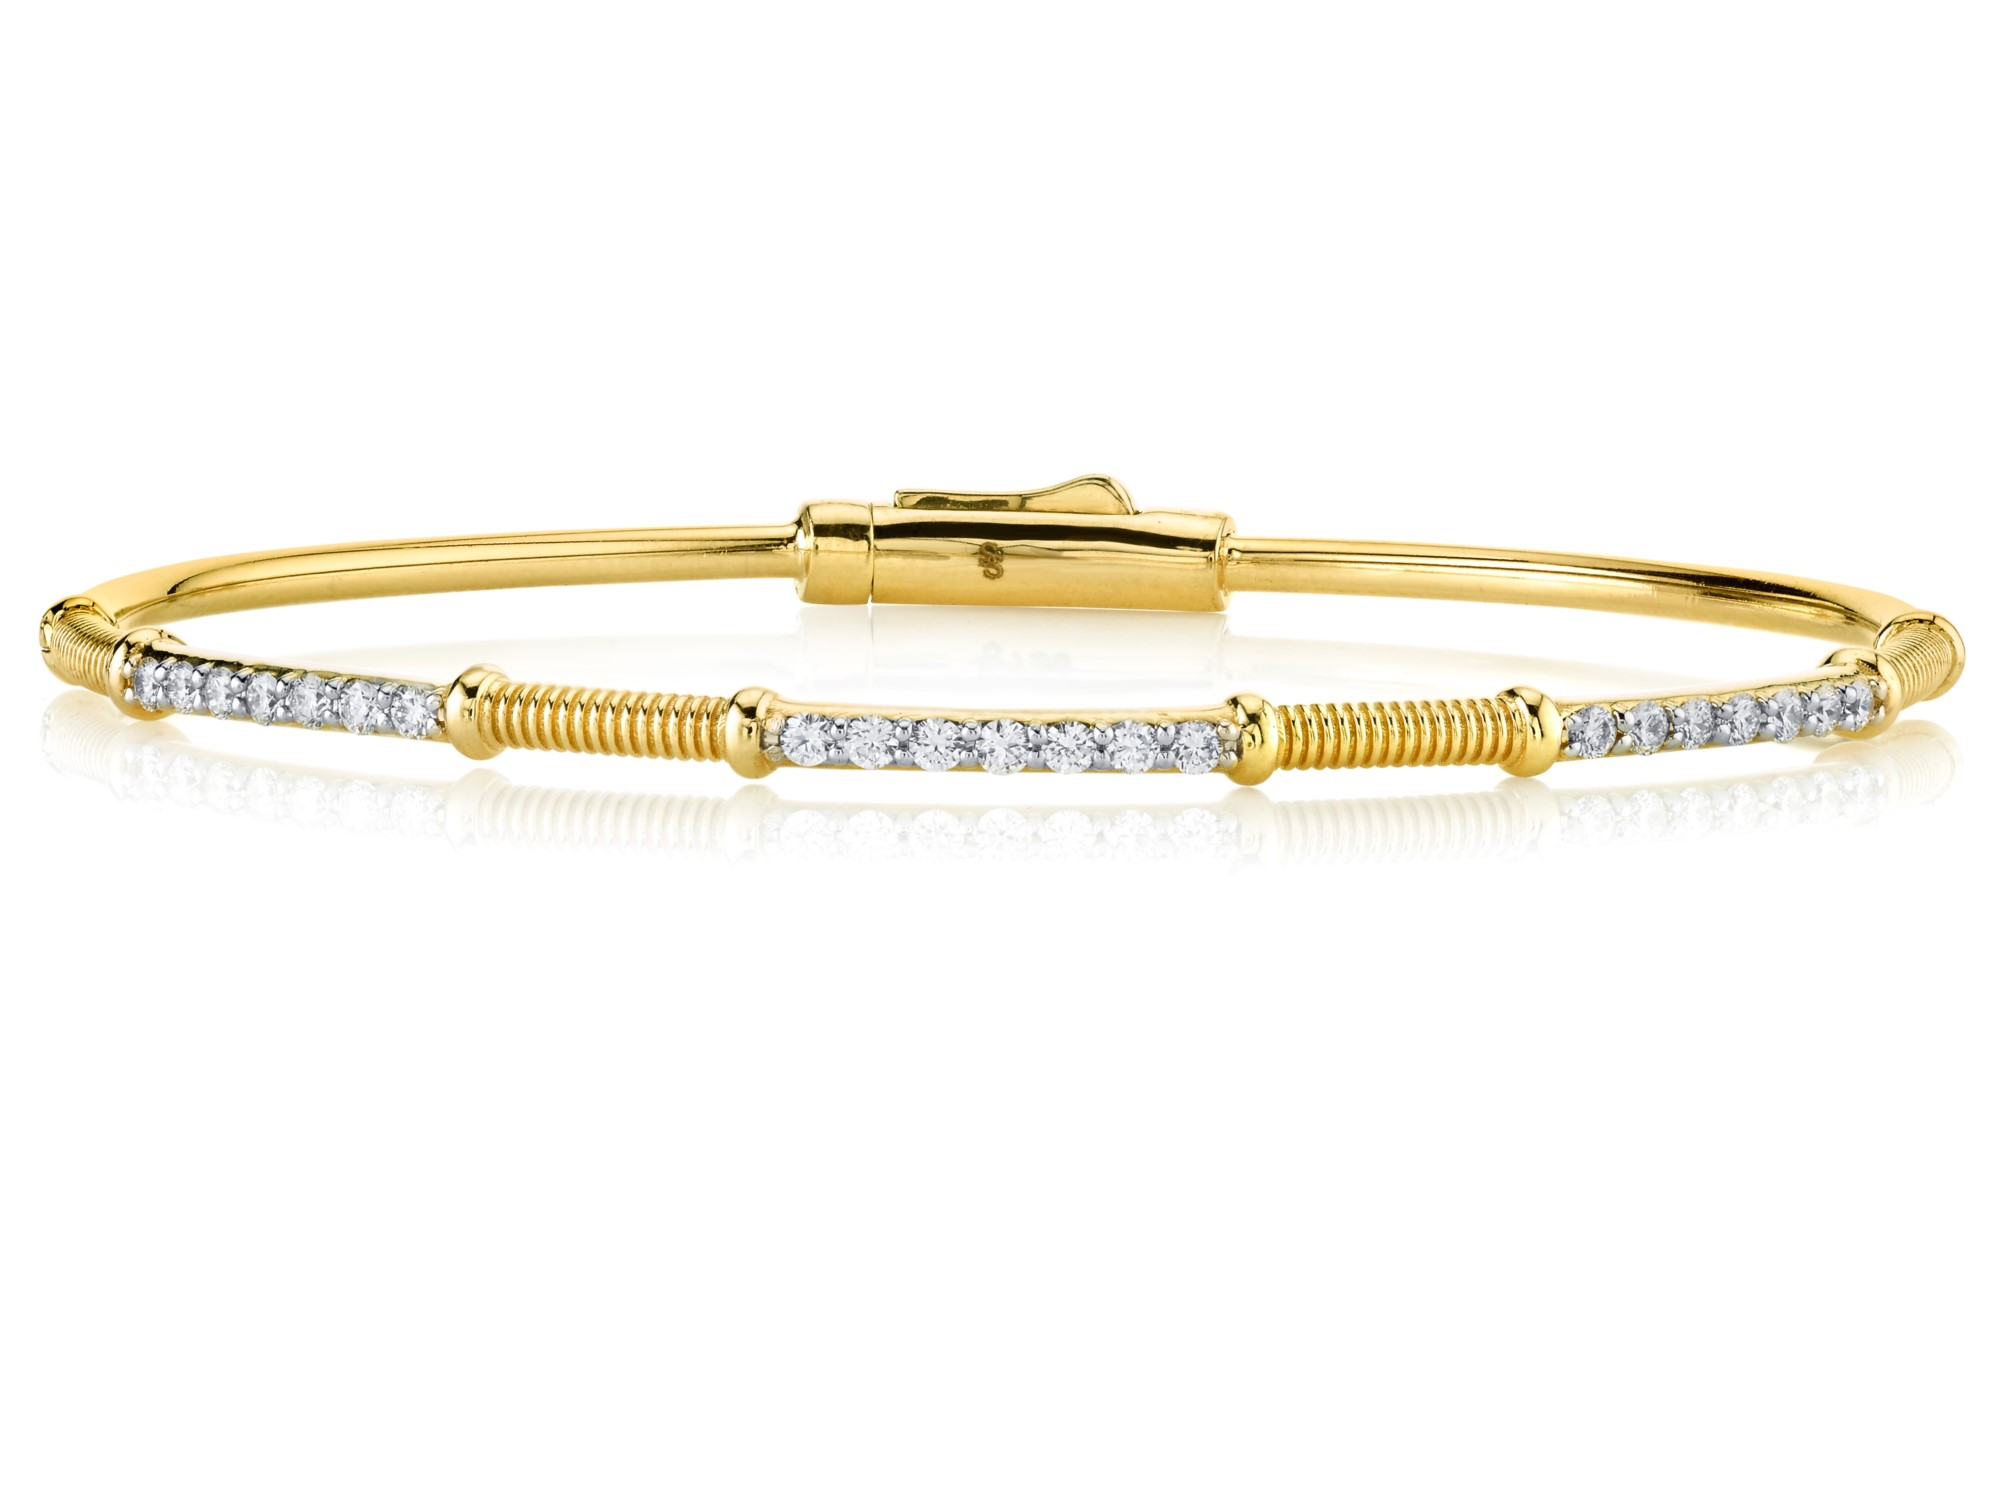 Sloane Street 18K Yellow Gold .41cts  Diamonds Gold Bangle with Stones B026E-WDCB-Y